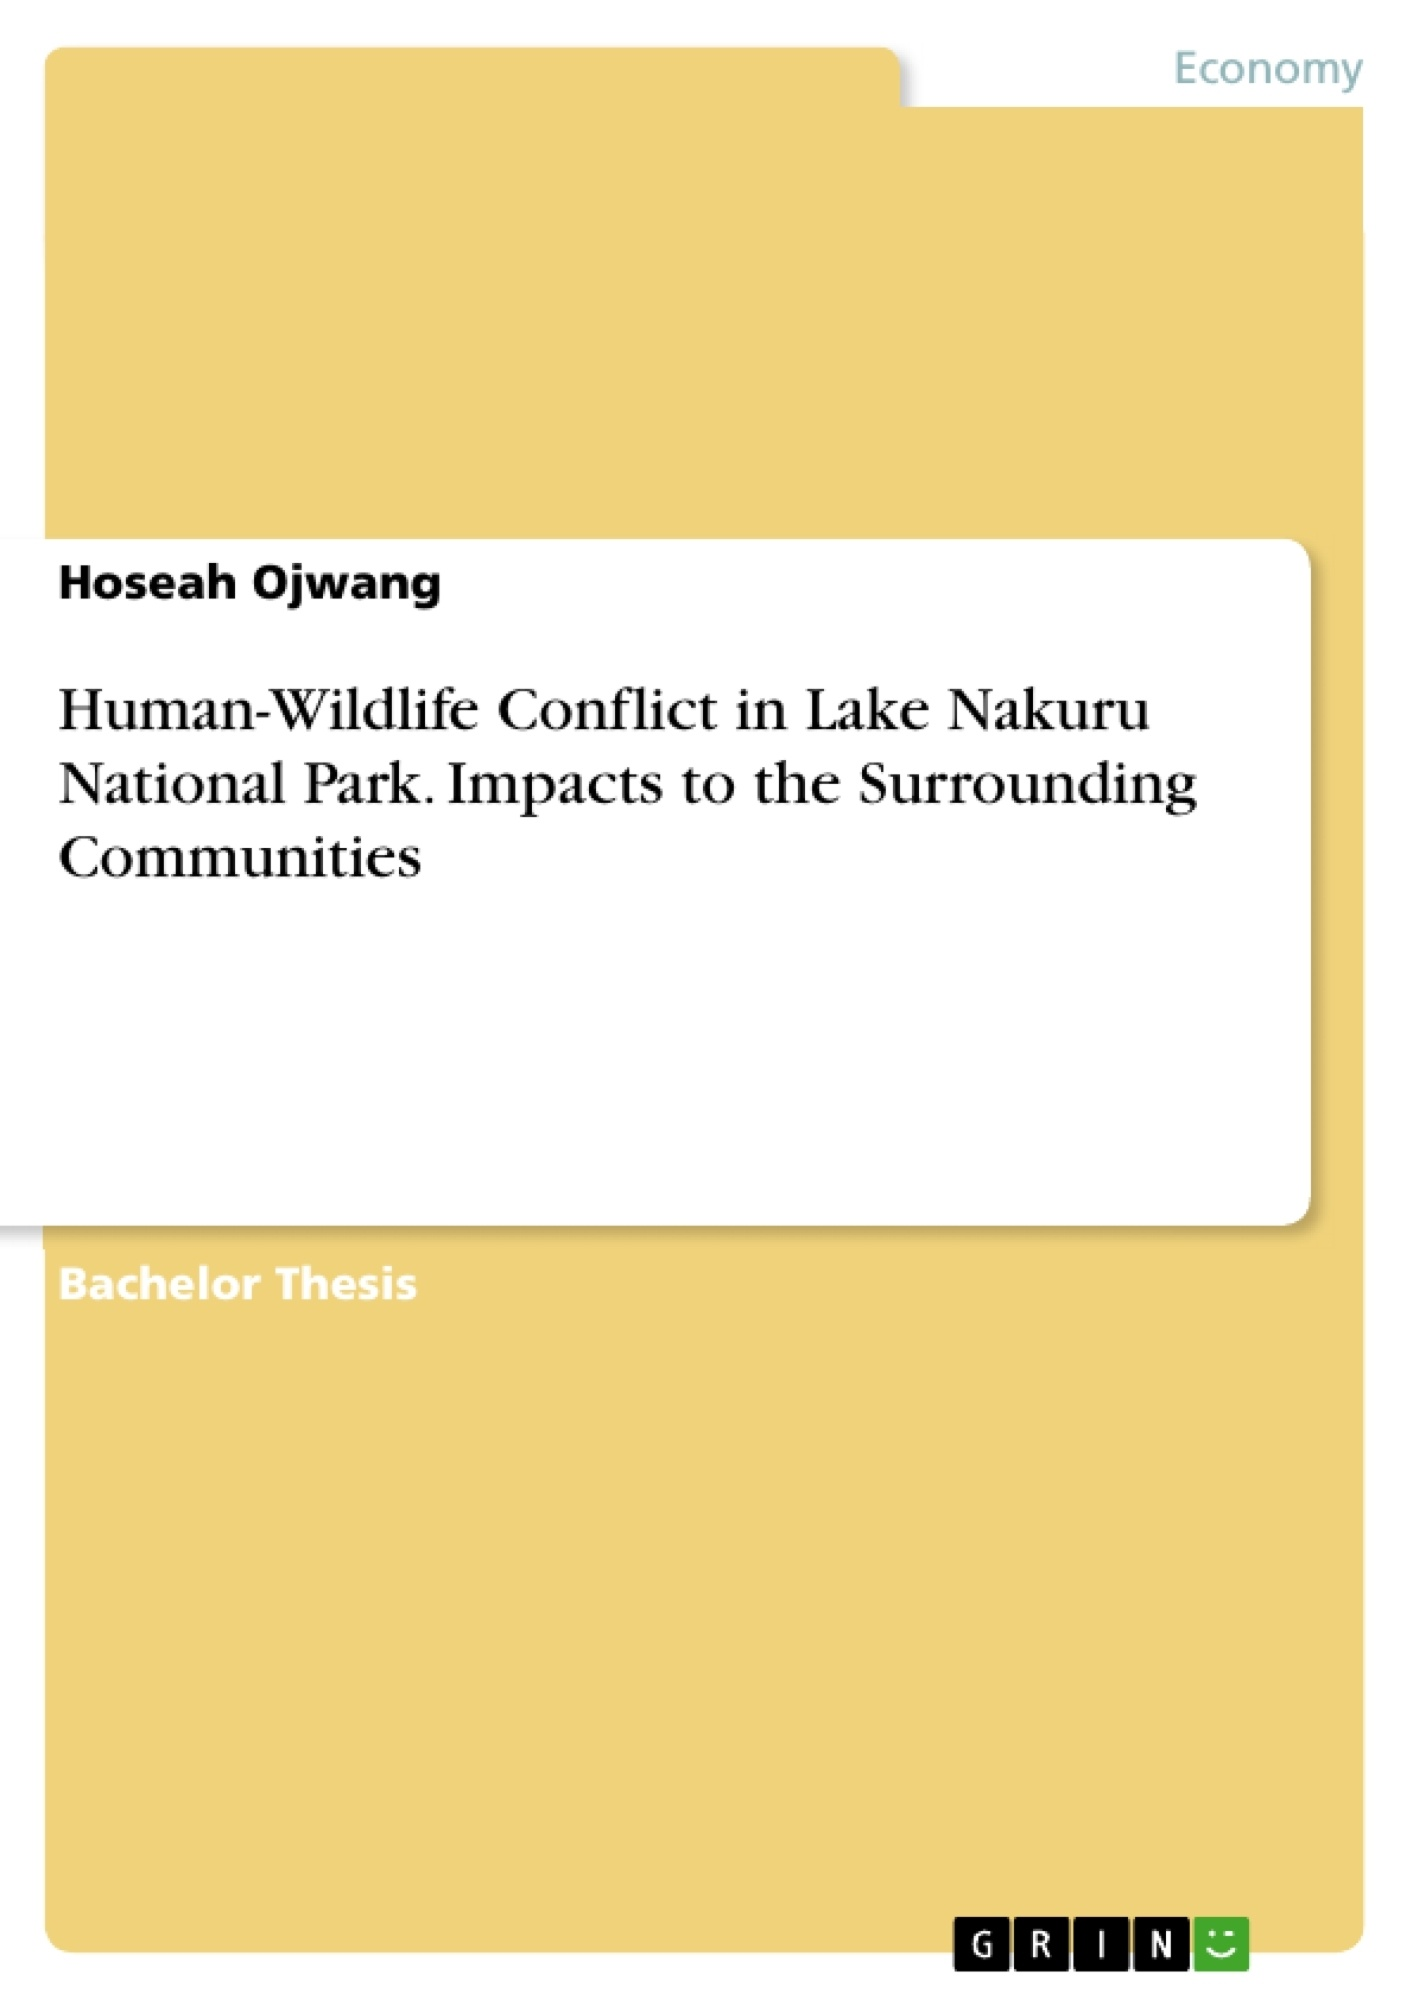 Title: Human-Wildlife Conflict in Lake Nakuru National Park. Impacts to the Surrounding Communities